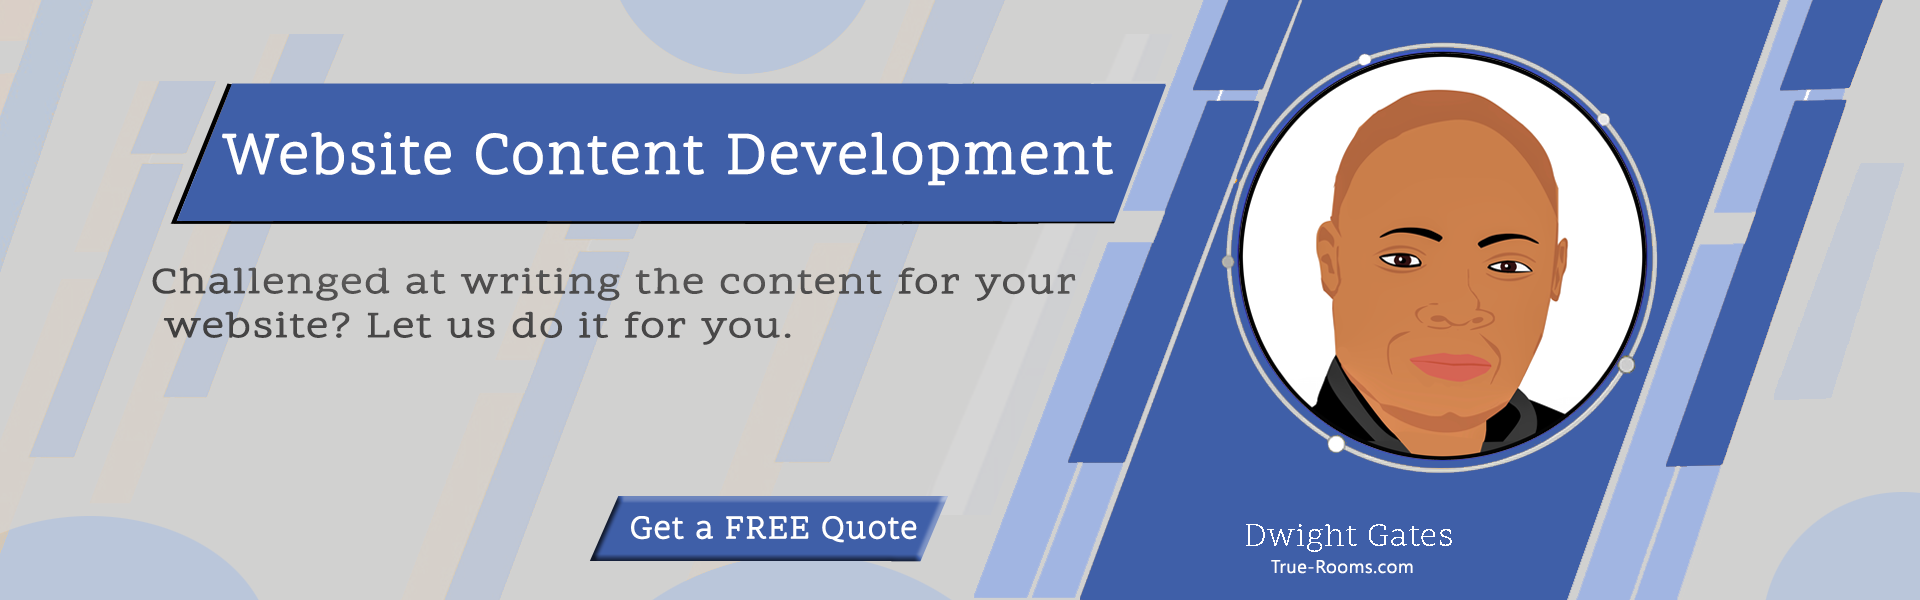 Website Content Development